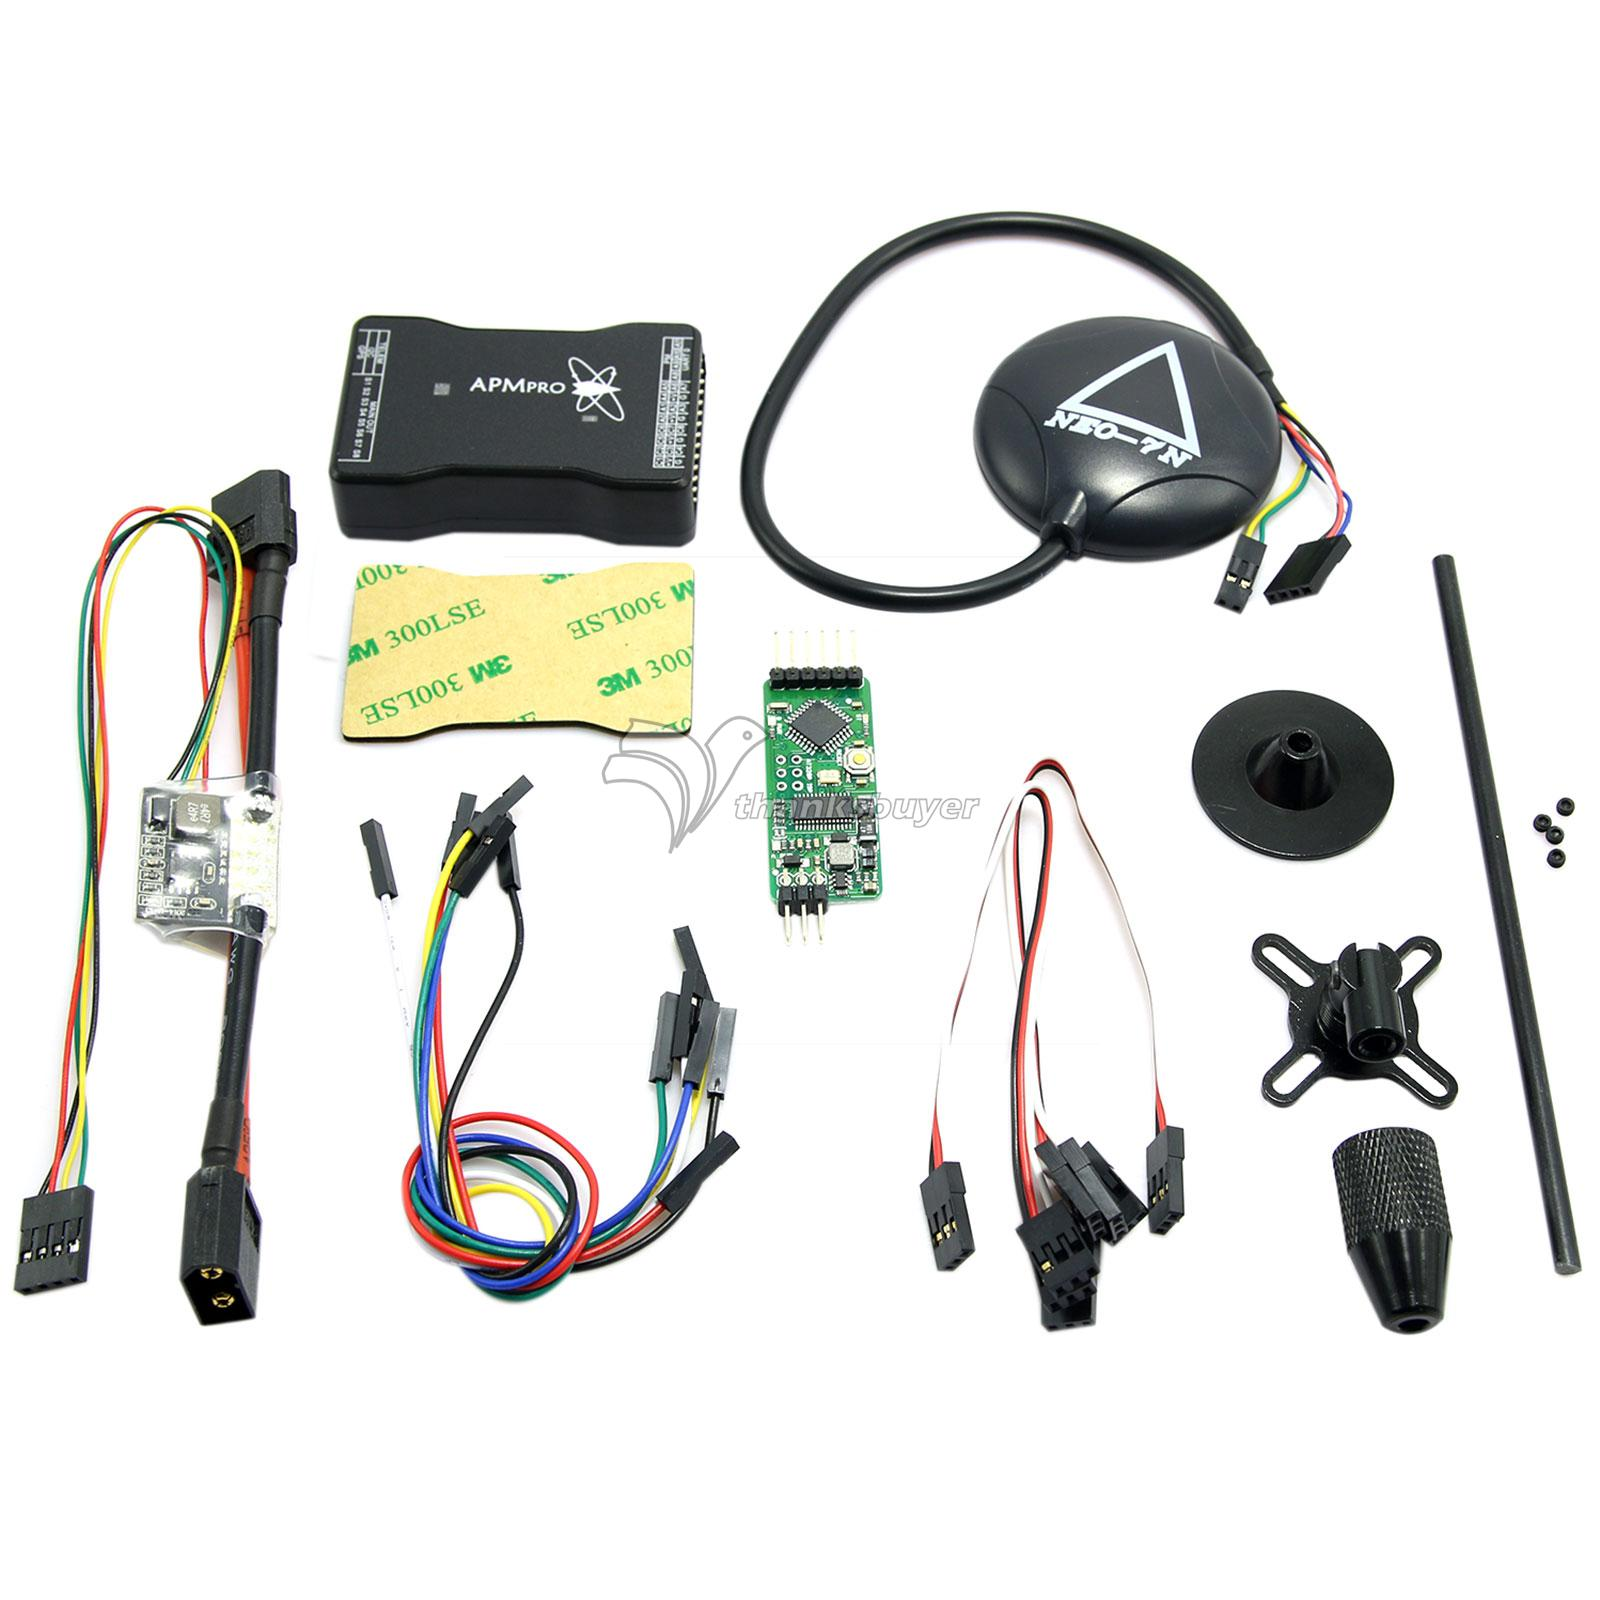 Mini APM Pro Flight Control Opensource Hardware with Neo-7N GPS & Power Module & Mini OSD for Multicopter Aircraft apm flight control combo apm2 8 7m gps tx rx 433mhz 915mhz power module osd damper board